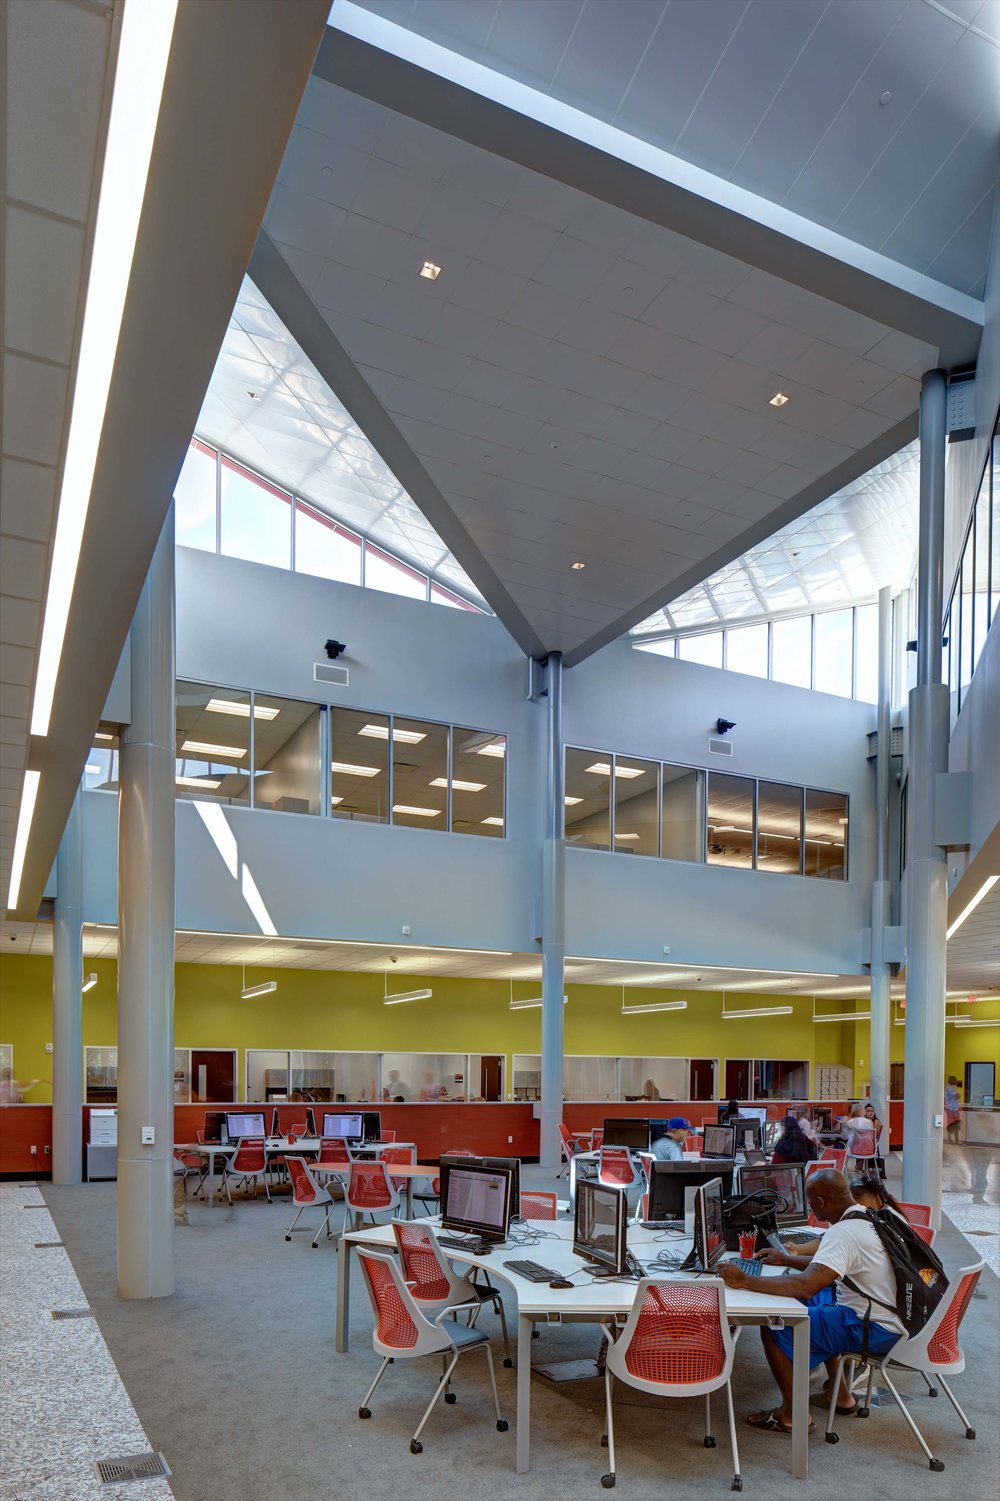 _W1A1642-8 Netta UCC Cranford (Student Ctr - front to back) lvl5 sm.jpg